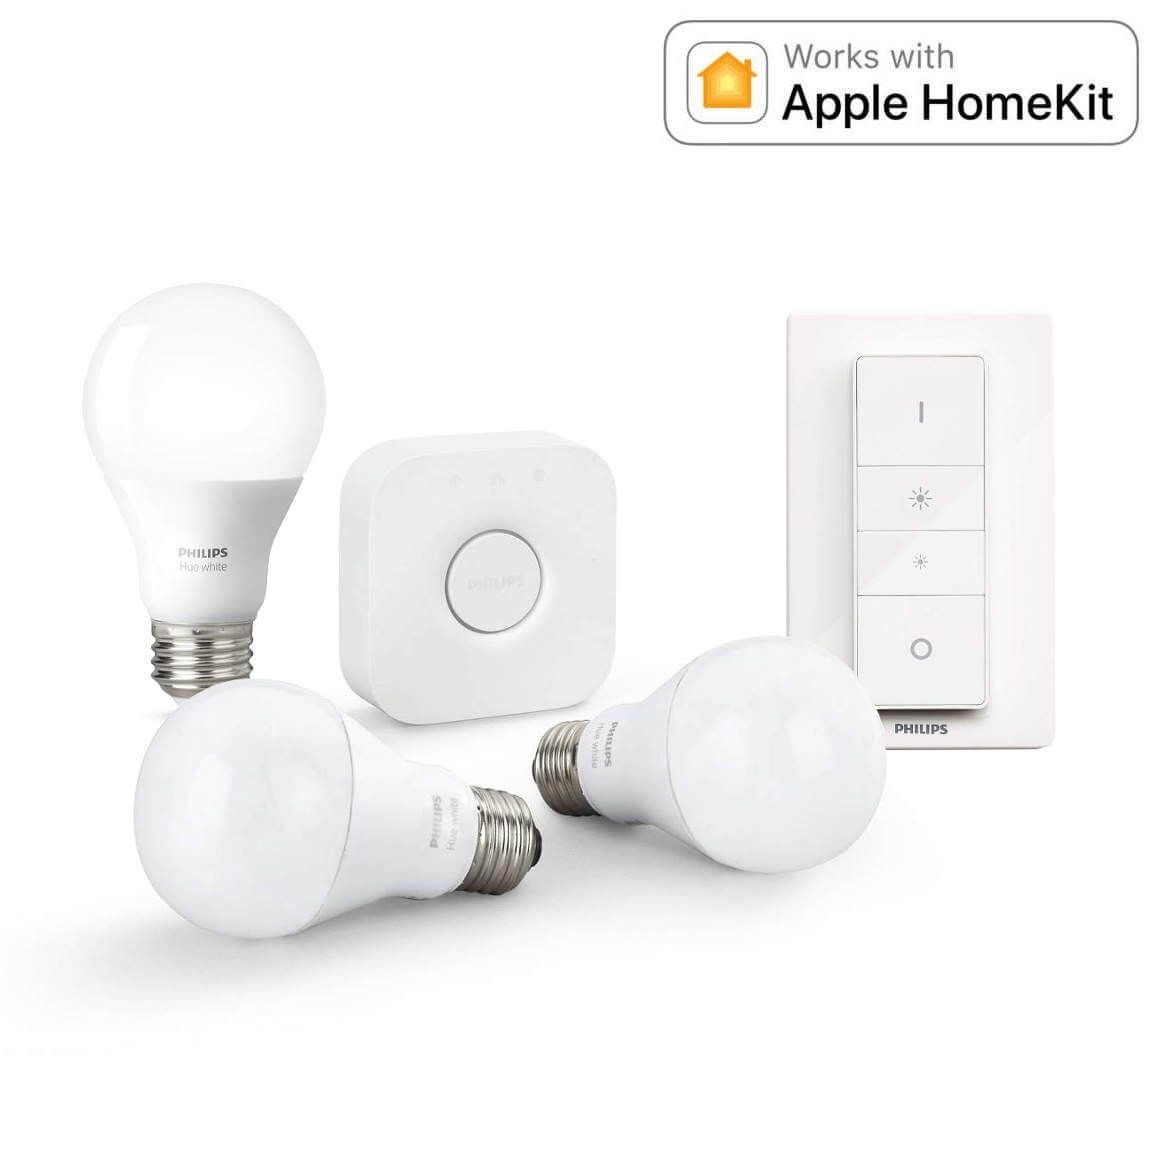 Philips Hue Starter Kit E27 Philips Hue White Starter Kit E27 99 95 Einkaufszettel